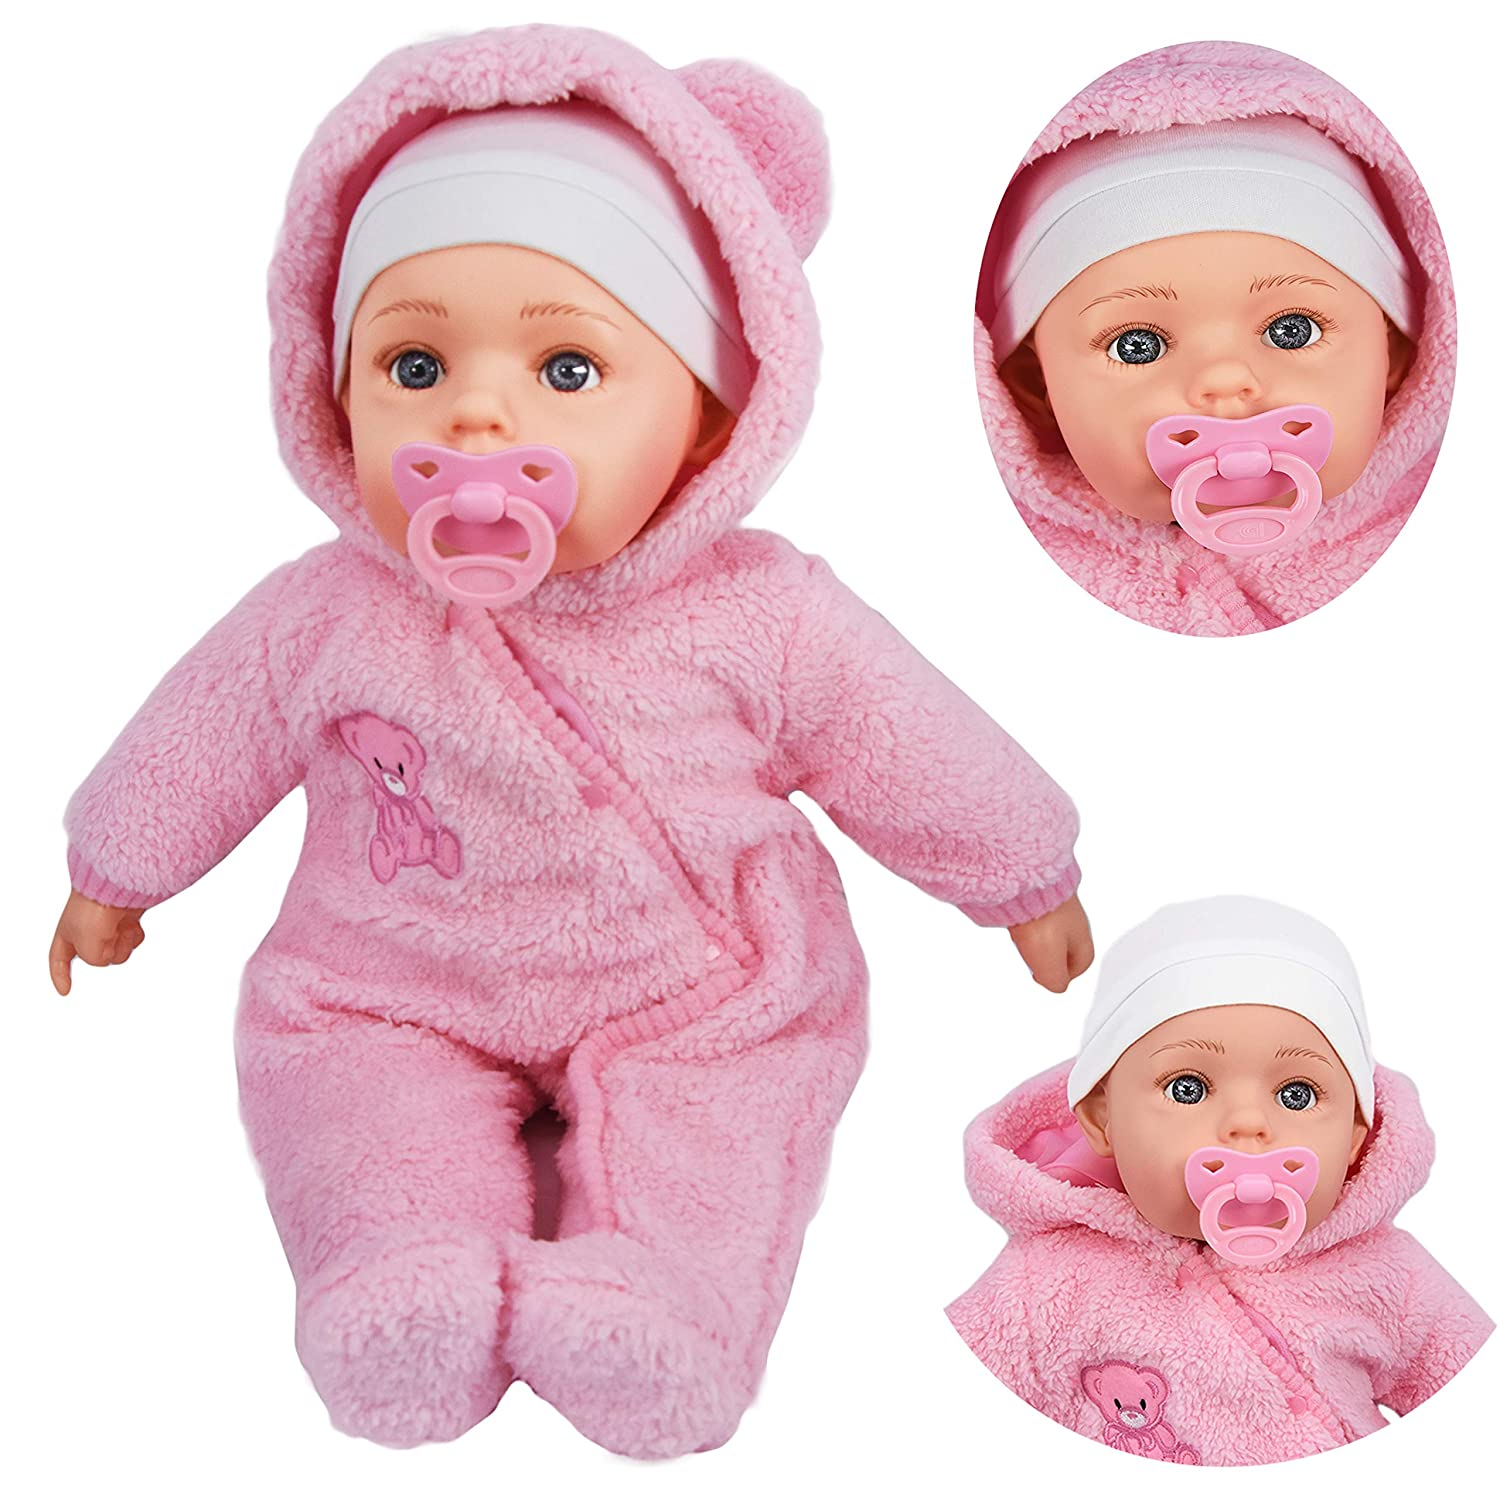 20' Lifelike Large Size Soft Bodied Baby Doll Girls Boys Toy With Dummy & Sounds (Baby Pink Coat) The Magic Toy Shop